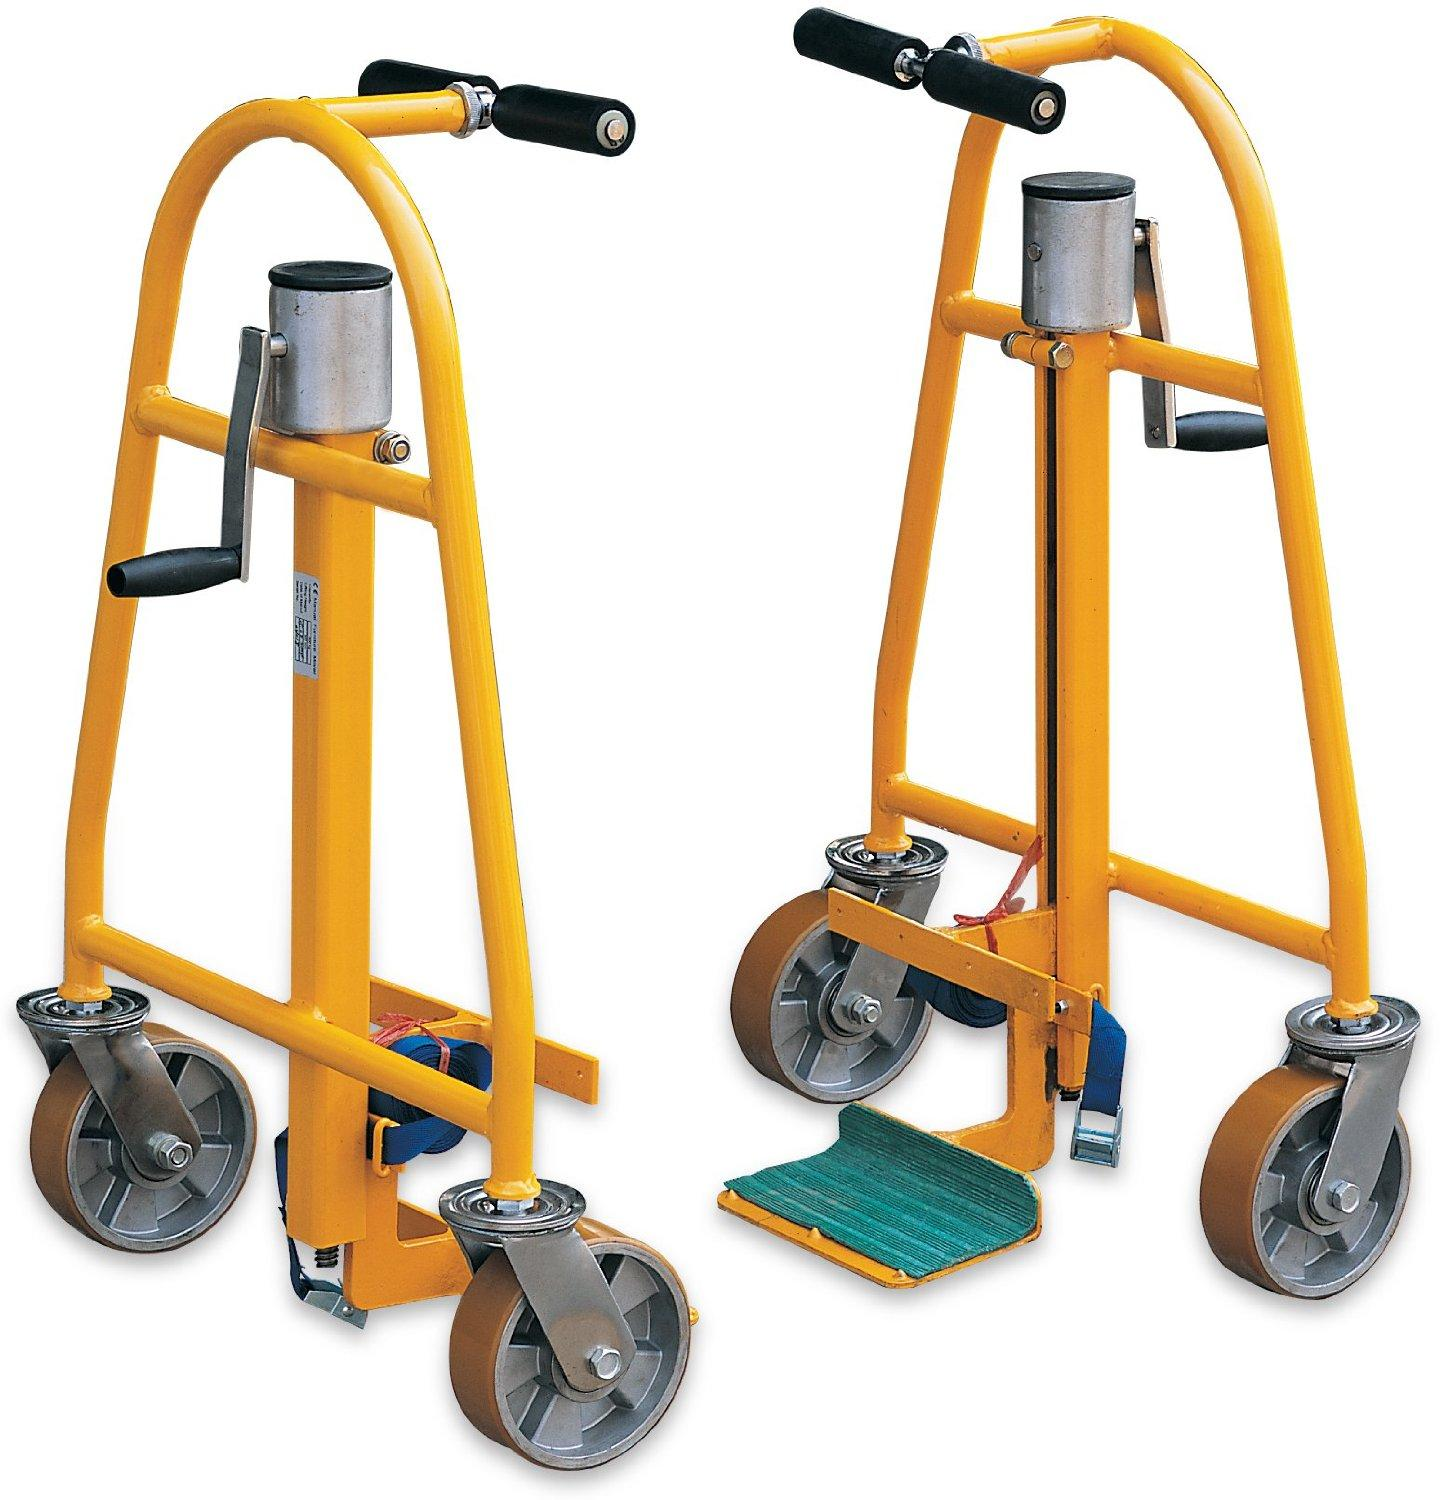 Hu Lift Fm60 Manual Furniture Mover 1320 Lbs Capacity 21